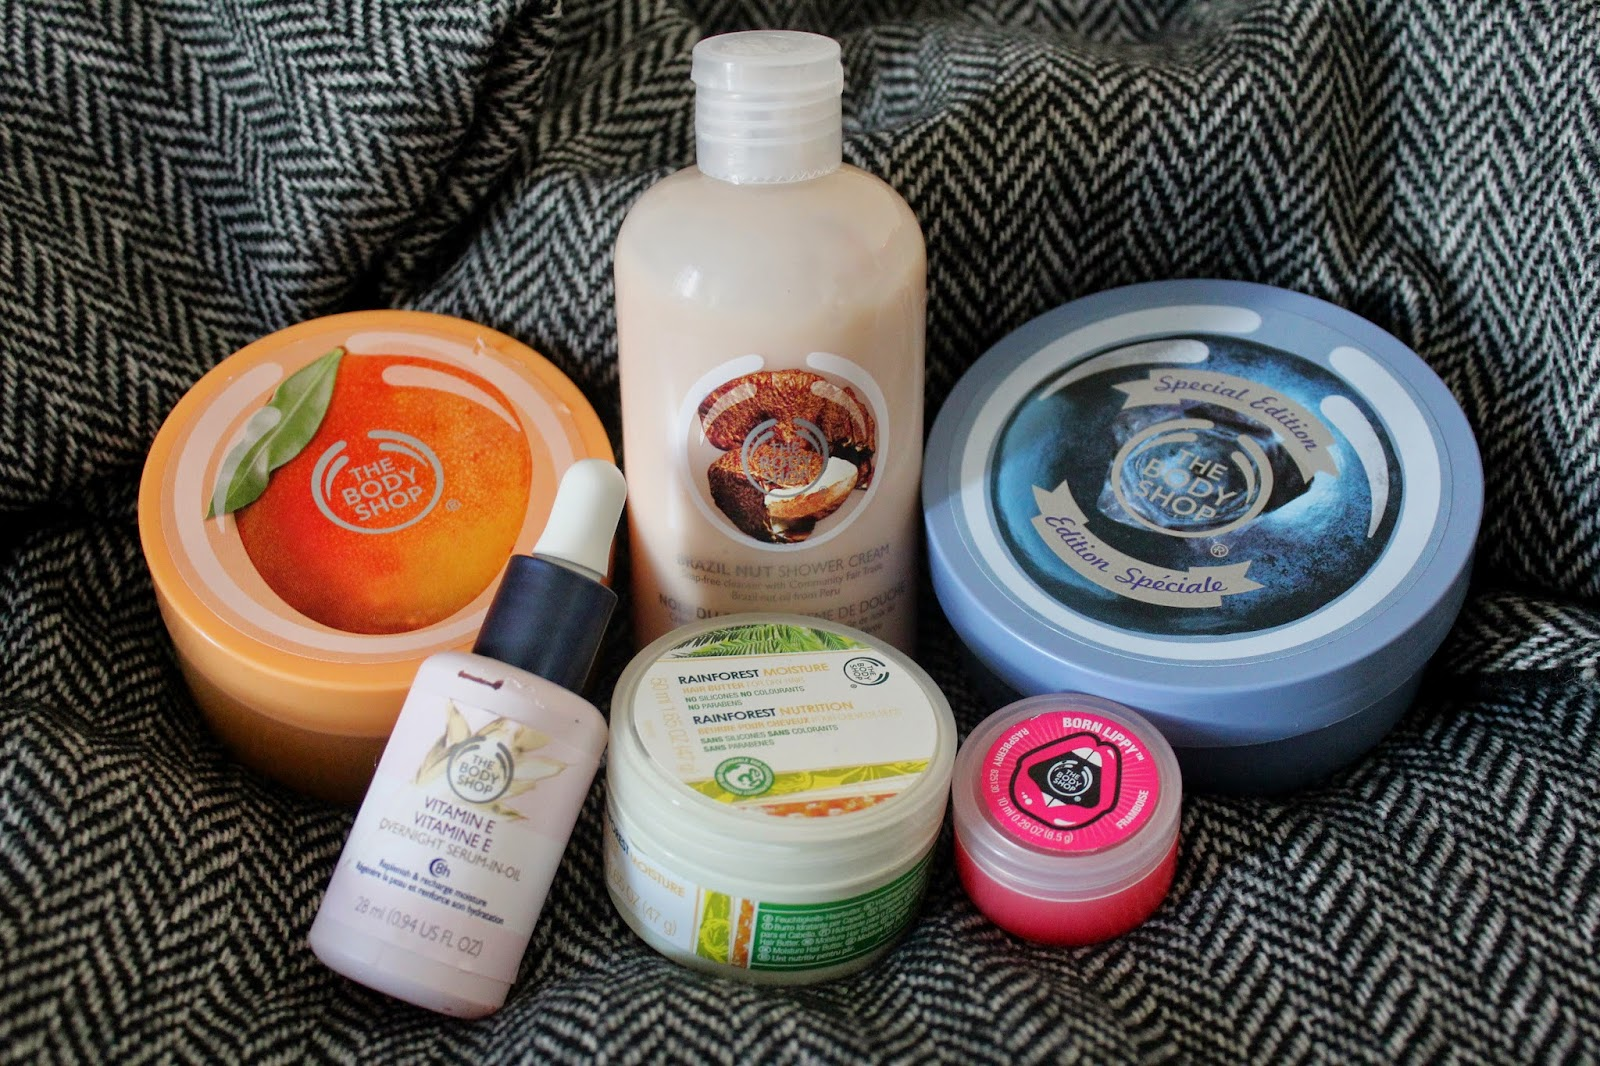 brand favourites body shop scrub body lotion butter vitamin e